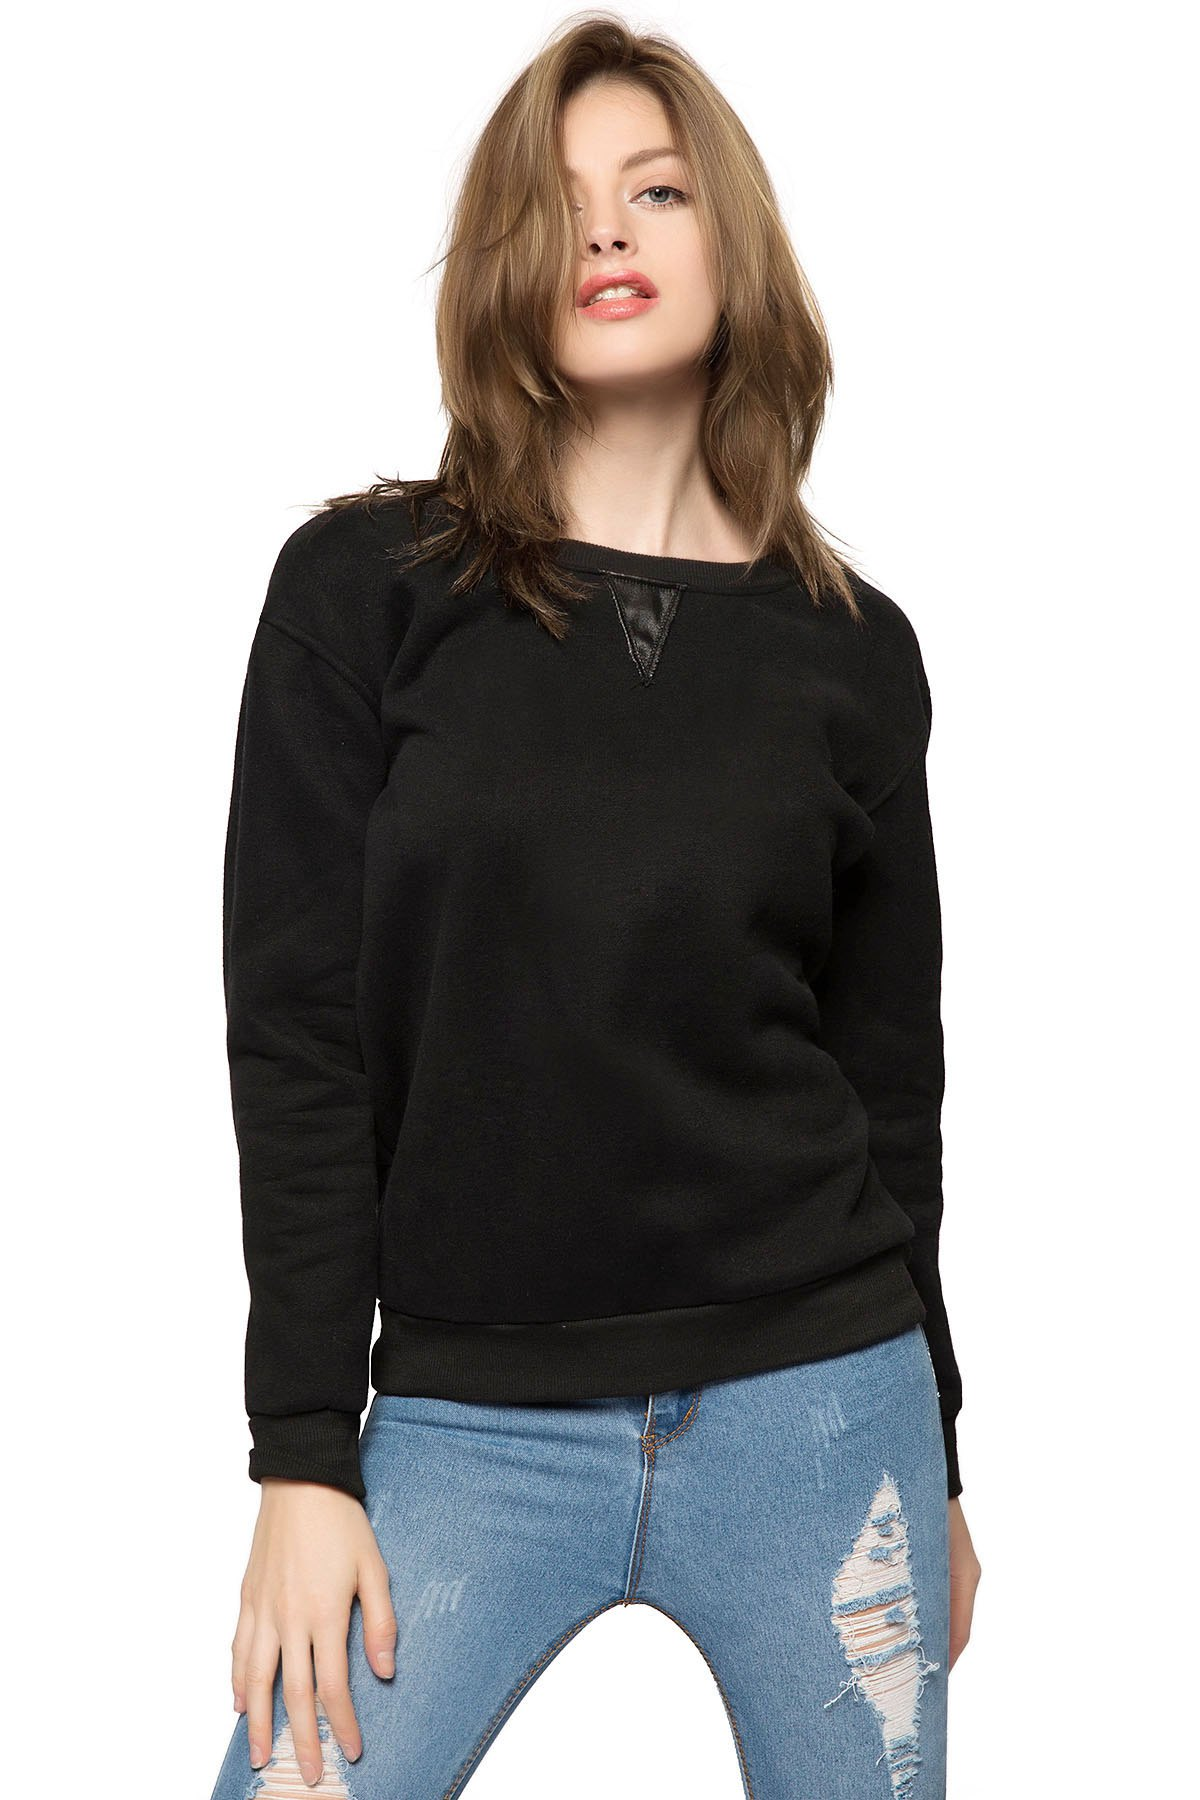 Black Long Sleeve Fringe Sweatshirt - BLACK M